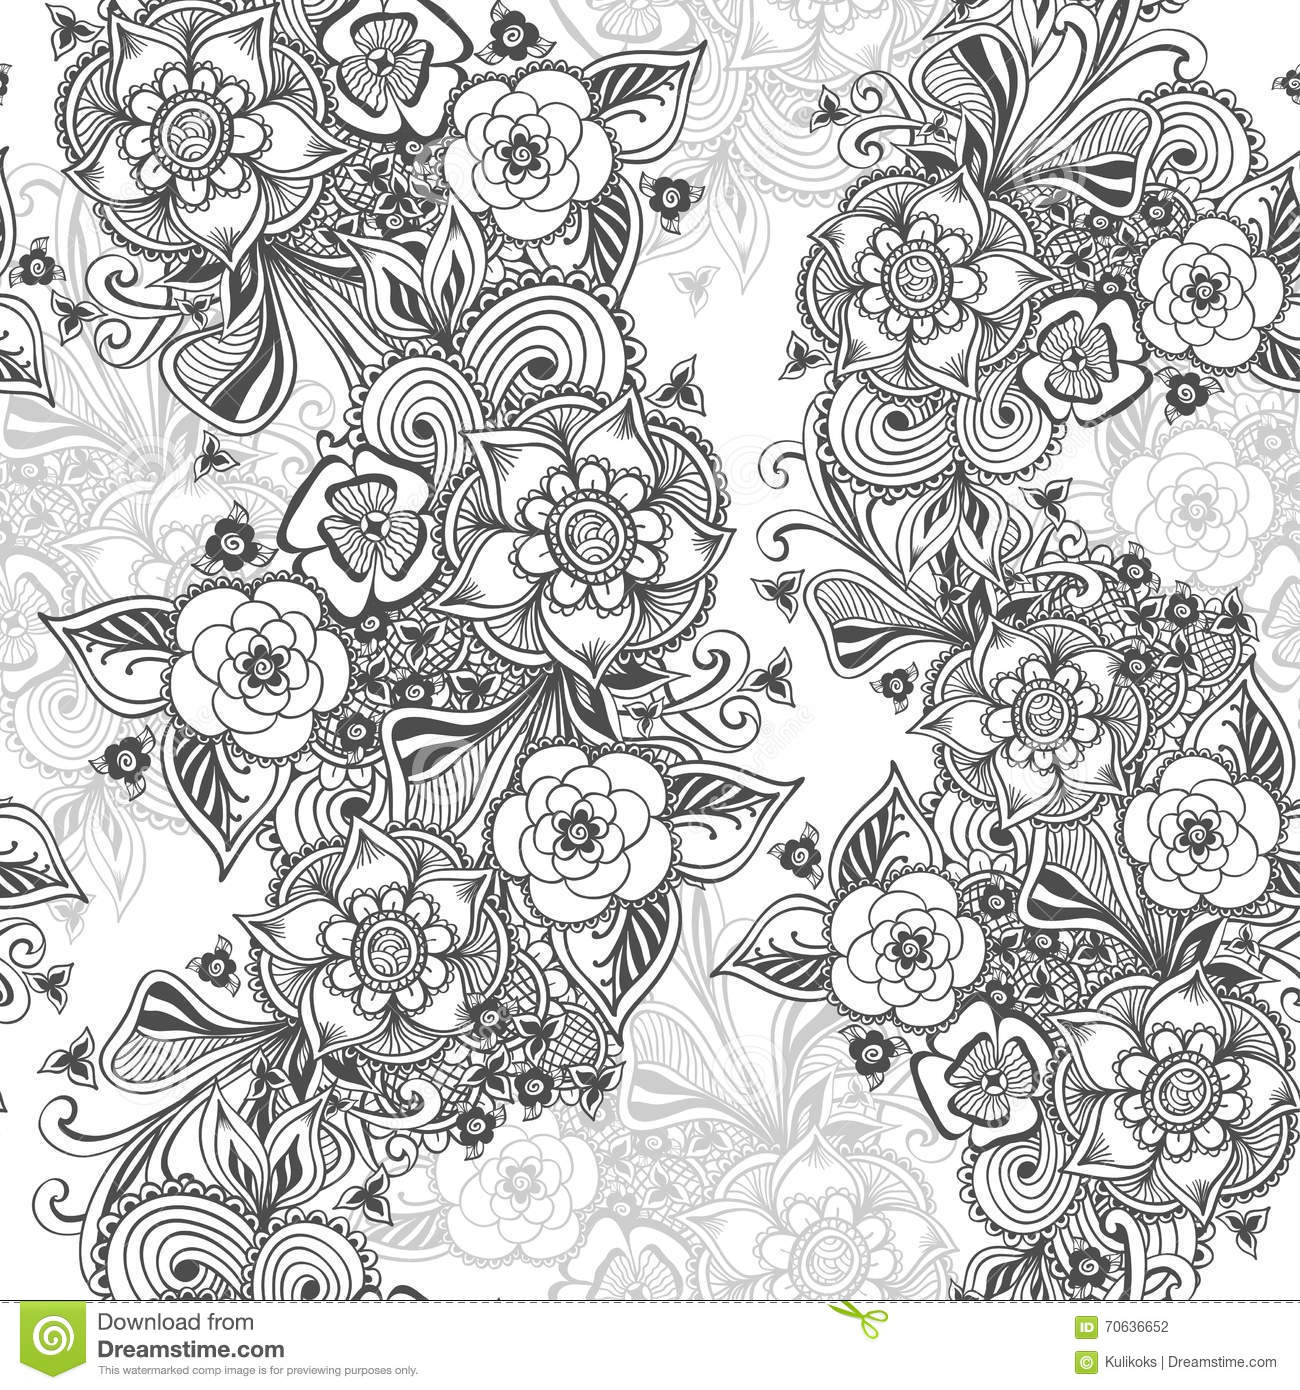 Zen coloring flowers - Coloring Book Wallpaper Seamless Pattern In Zen Doodle Flowers Style Black On White